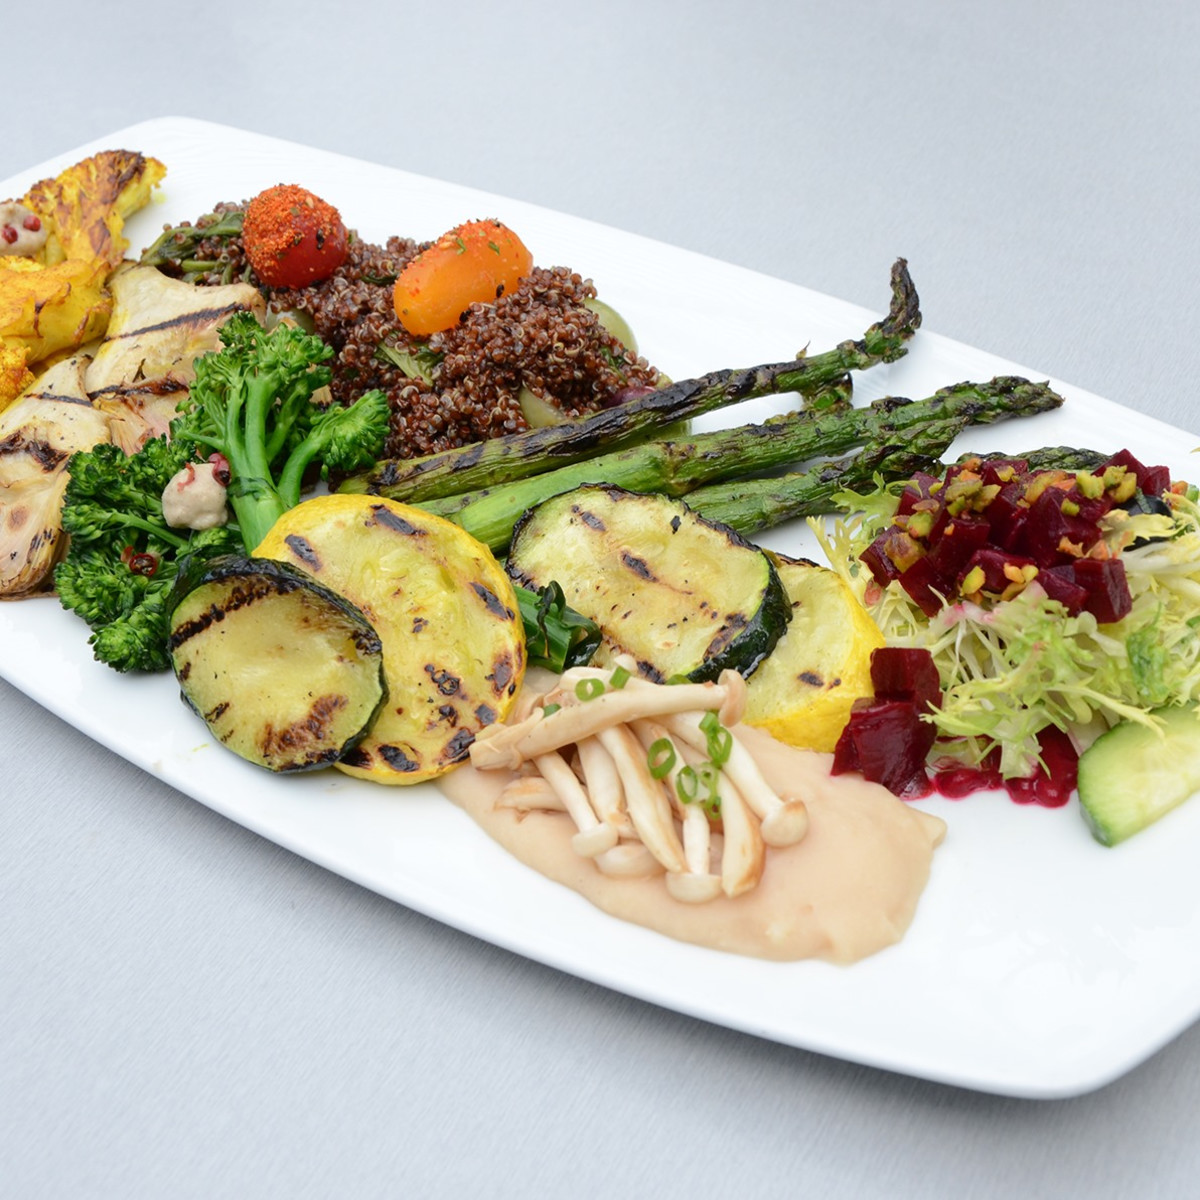 Bliss San Antonio vegan platter